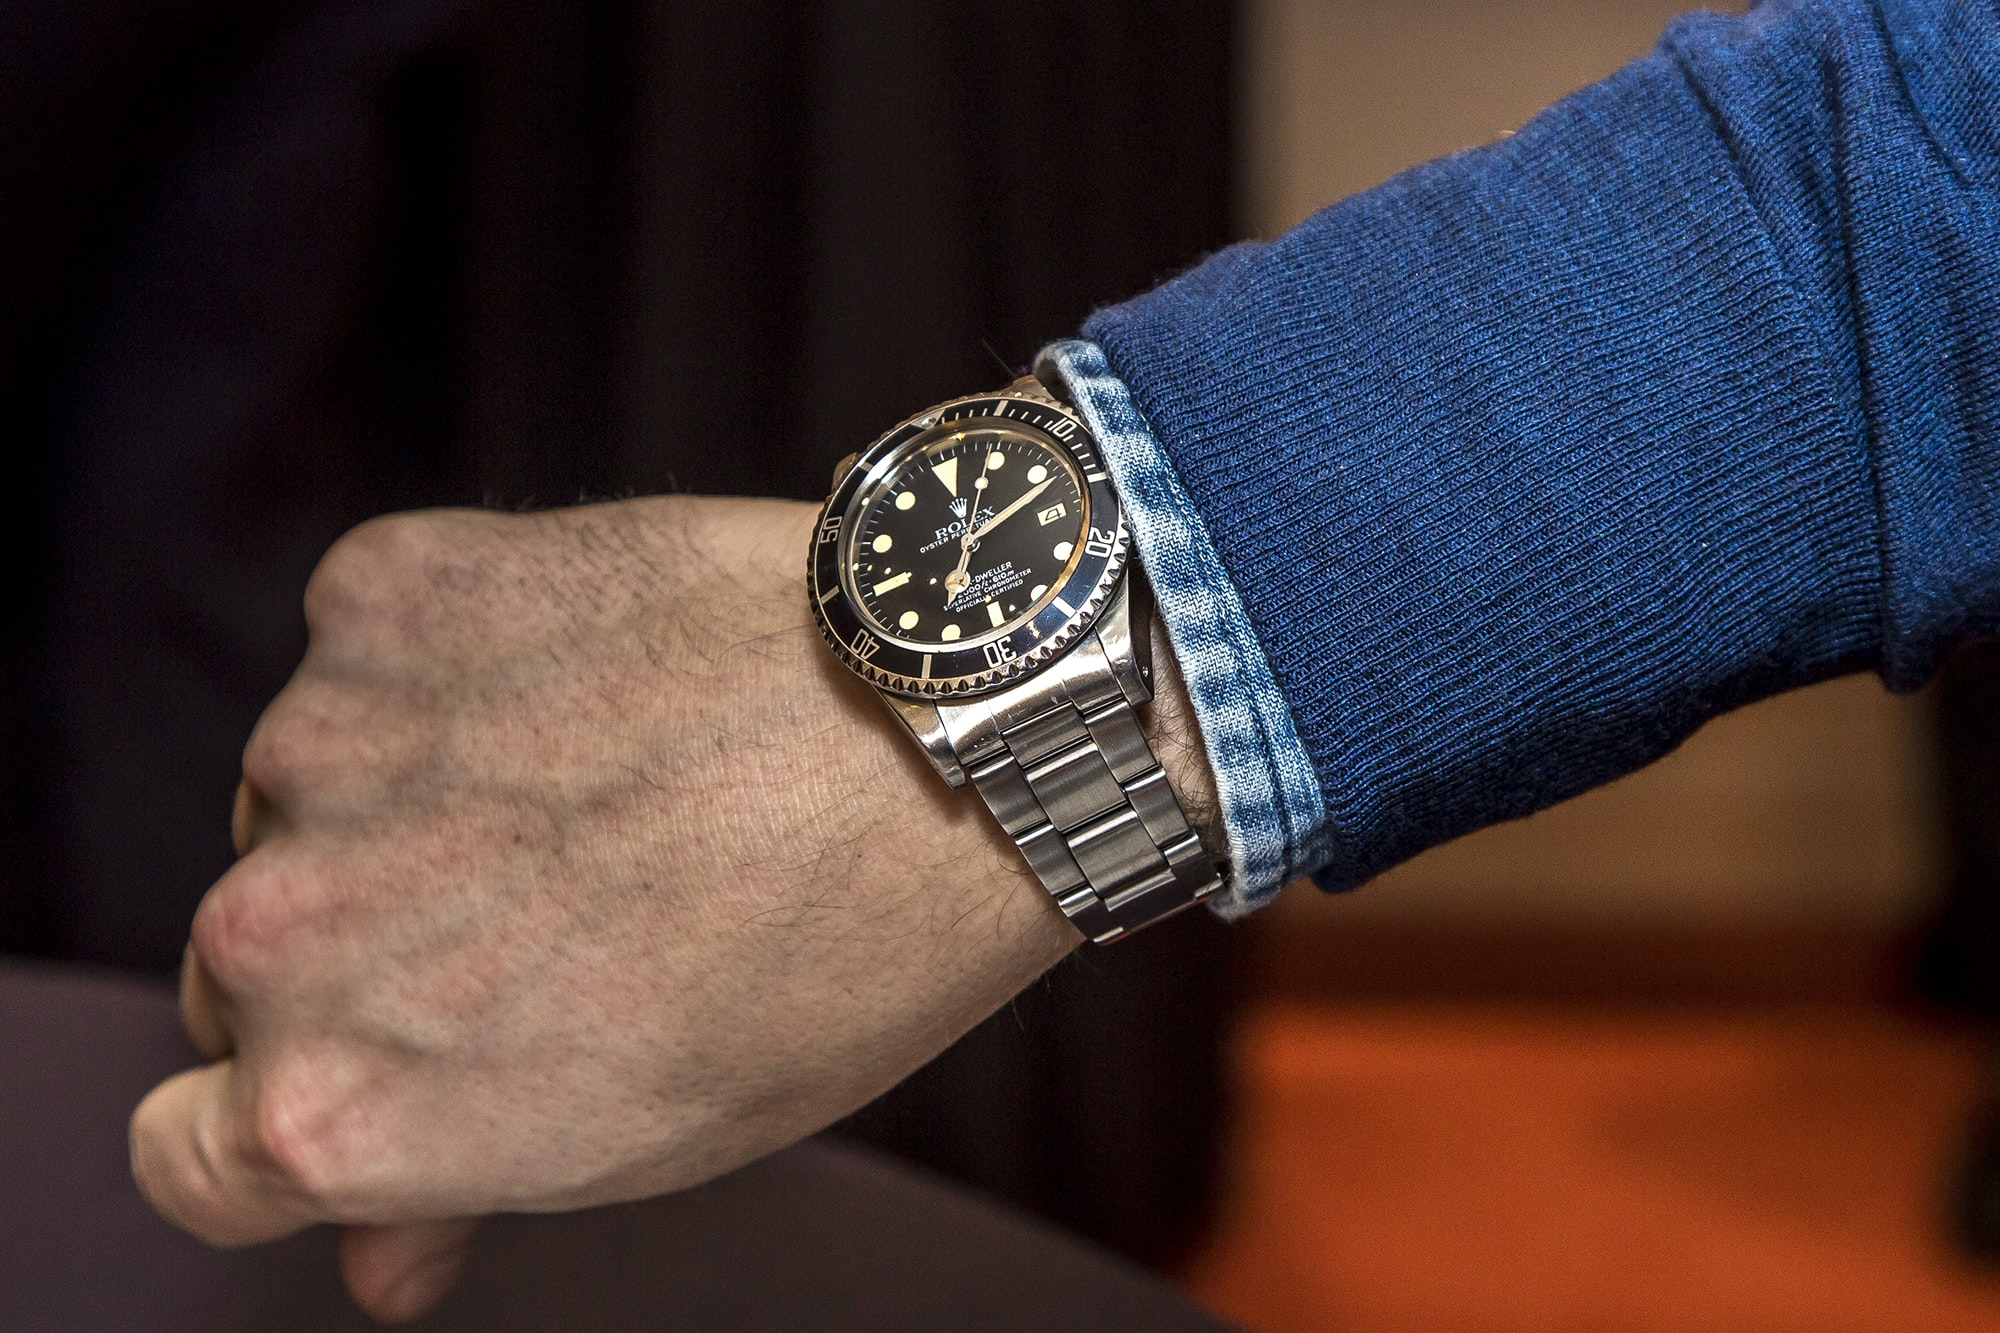 Photo Report: HODINKEE Hosts A Collector Get-Together At The Wempe Boutique In London Photo Report: HODINKEE Hosts A Collector Get-Together At The Wempe Boutique In London yu